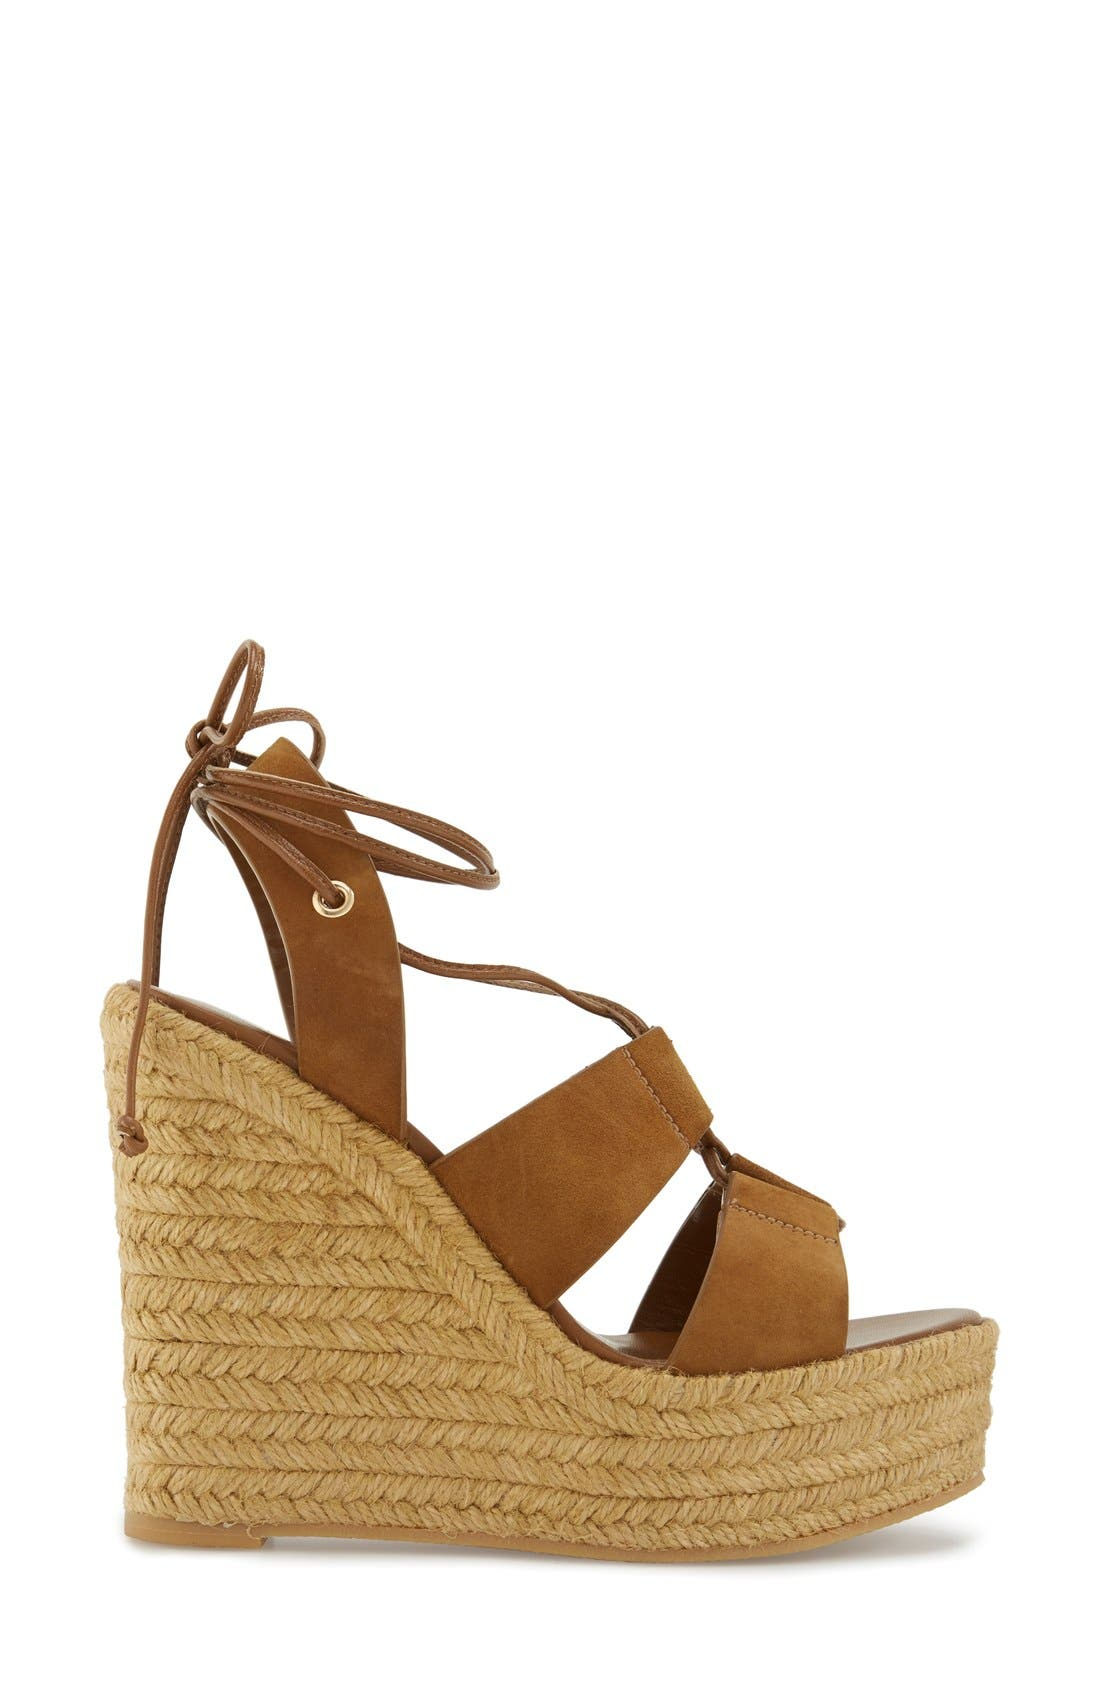 Woven Espadrille Wedge Sandal,                             Alternate thumbnail 4, color,                             Tan Suede